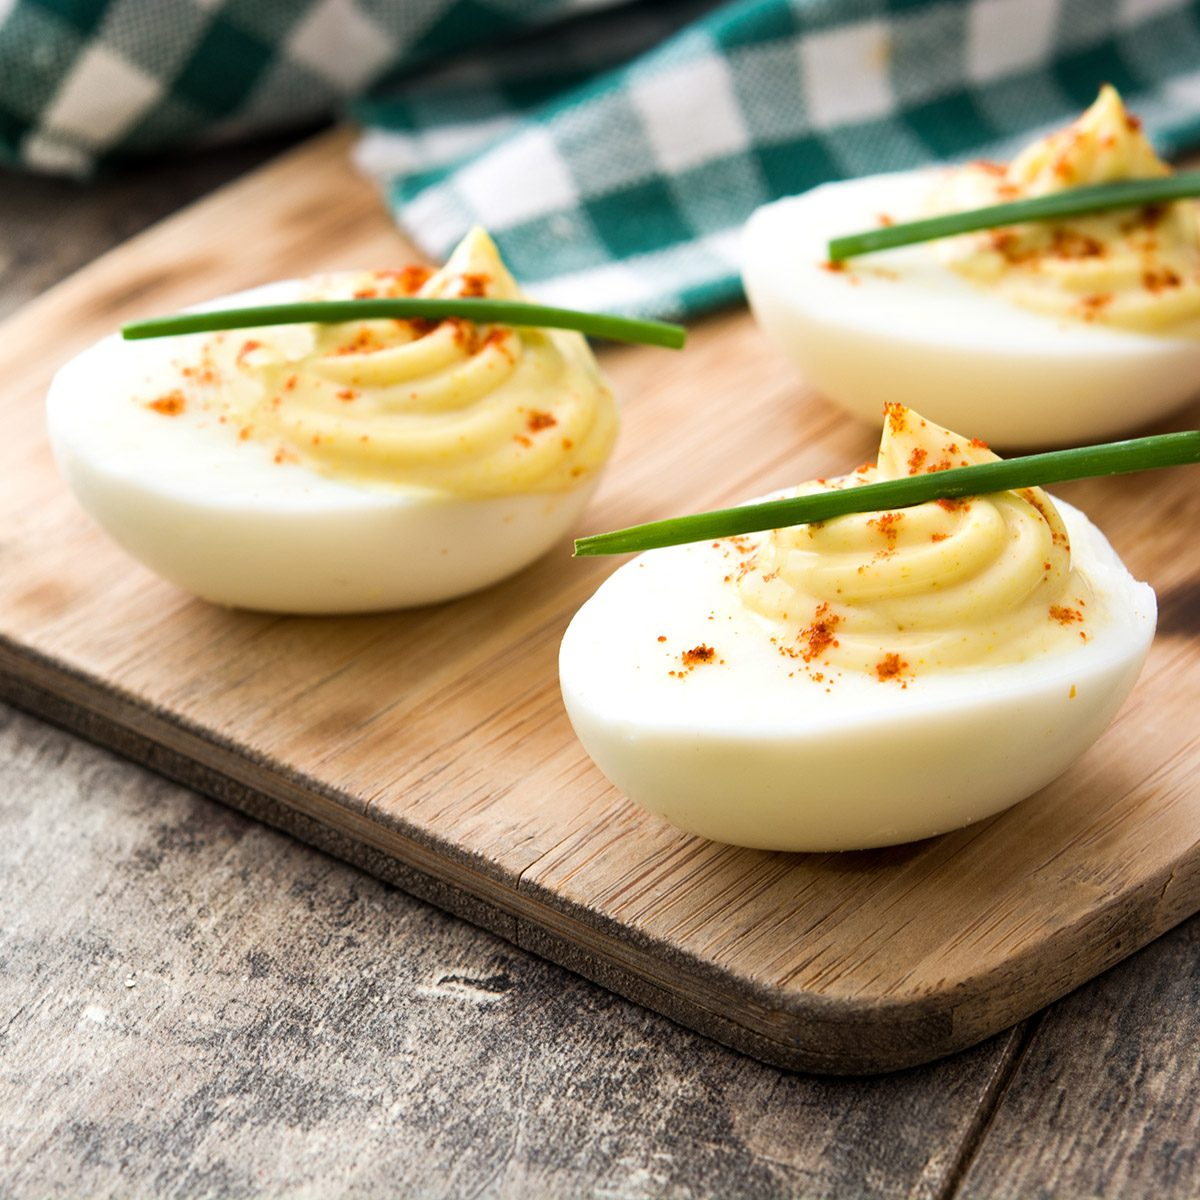 Stuffed eggs with mustard, mayo and paprika on wooden table